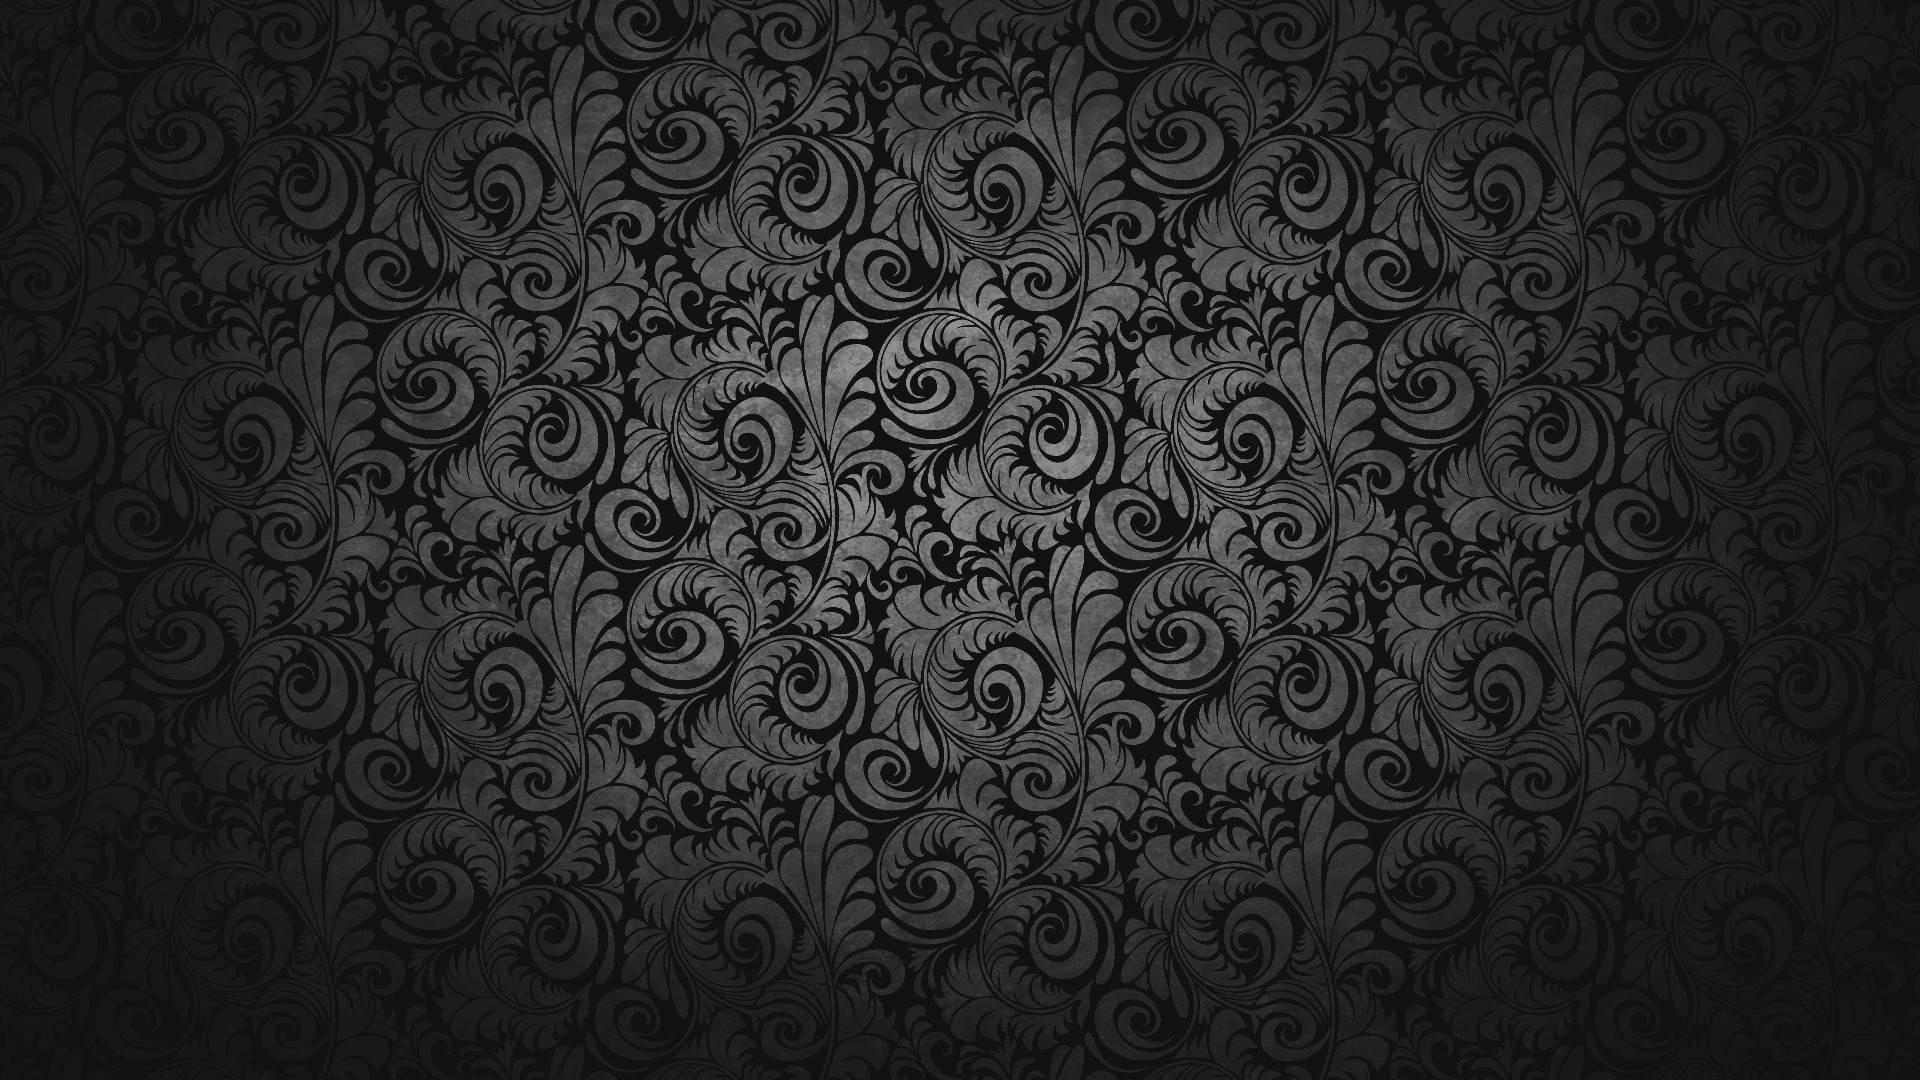 Background wallpaper - Dark Background 1920x1080 Hd Image Abstract 3d